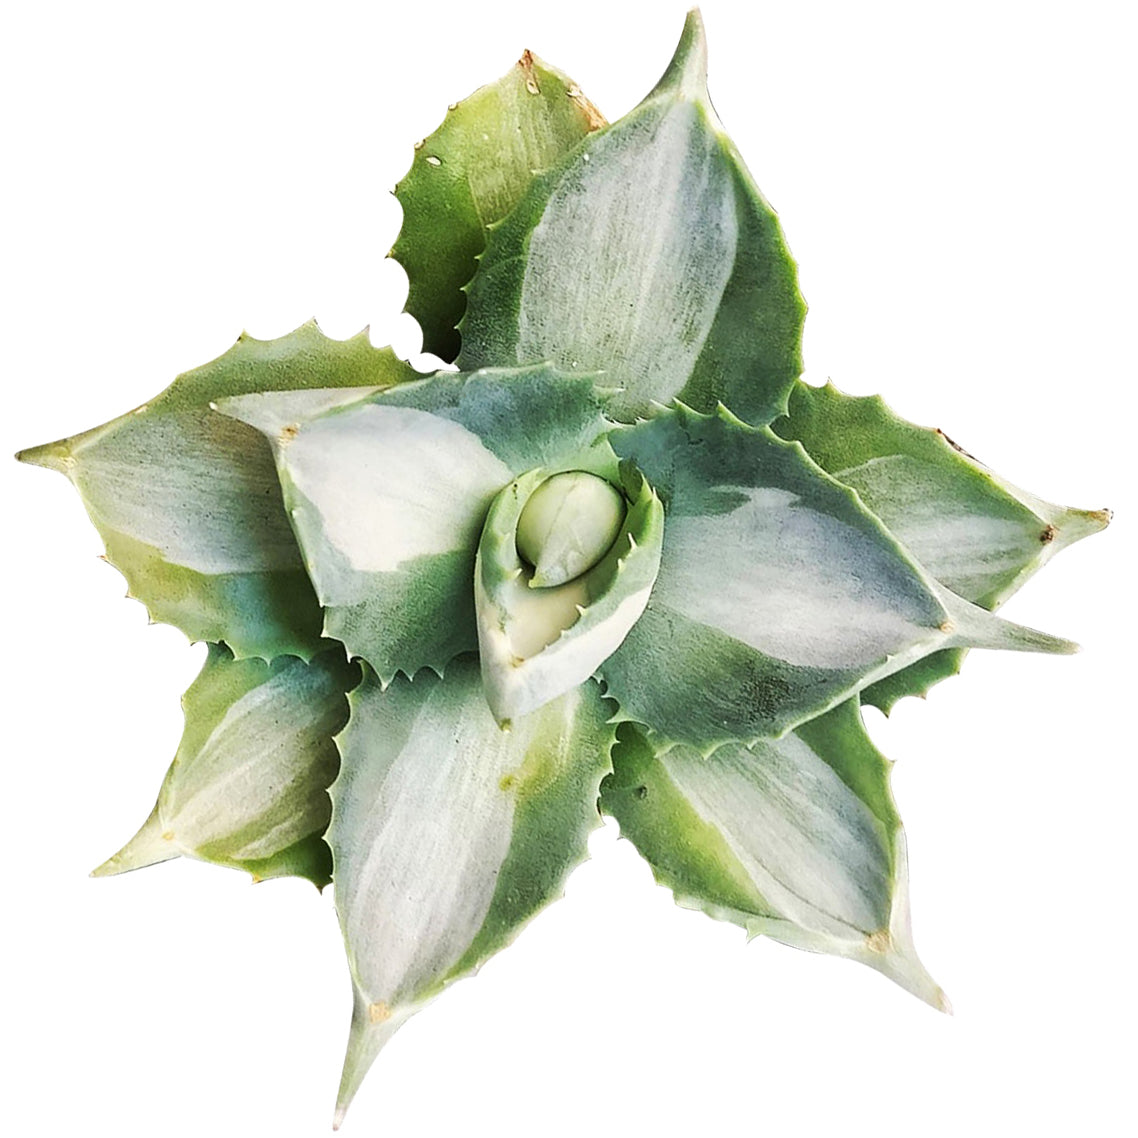 Variegated Agave Butterfly, succulent care guide, succulent care, succulents garden, cactus, monthly succulents, succulents shop in California, succulent care tips, succulents store in CA, Variegated Agave Butterfly in California, How to grow Variegated Agave Butterfly